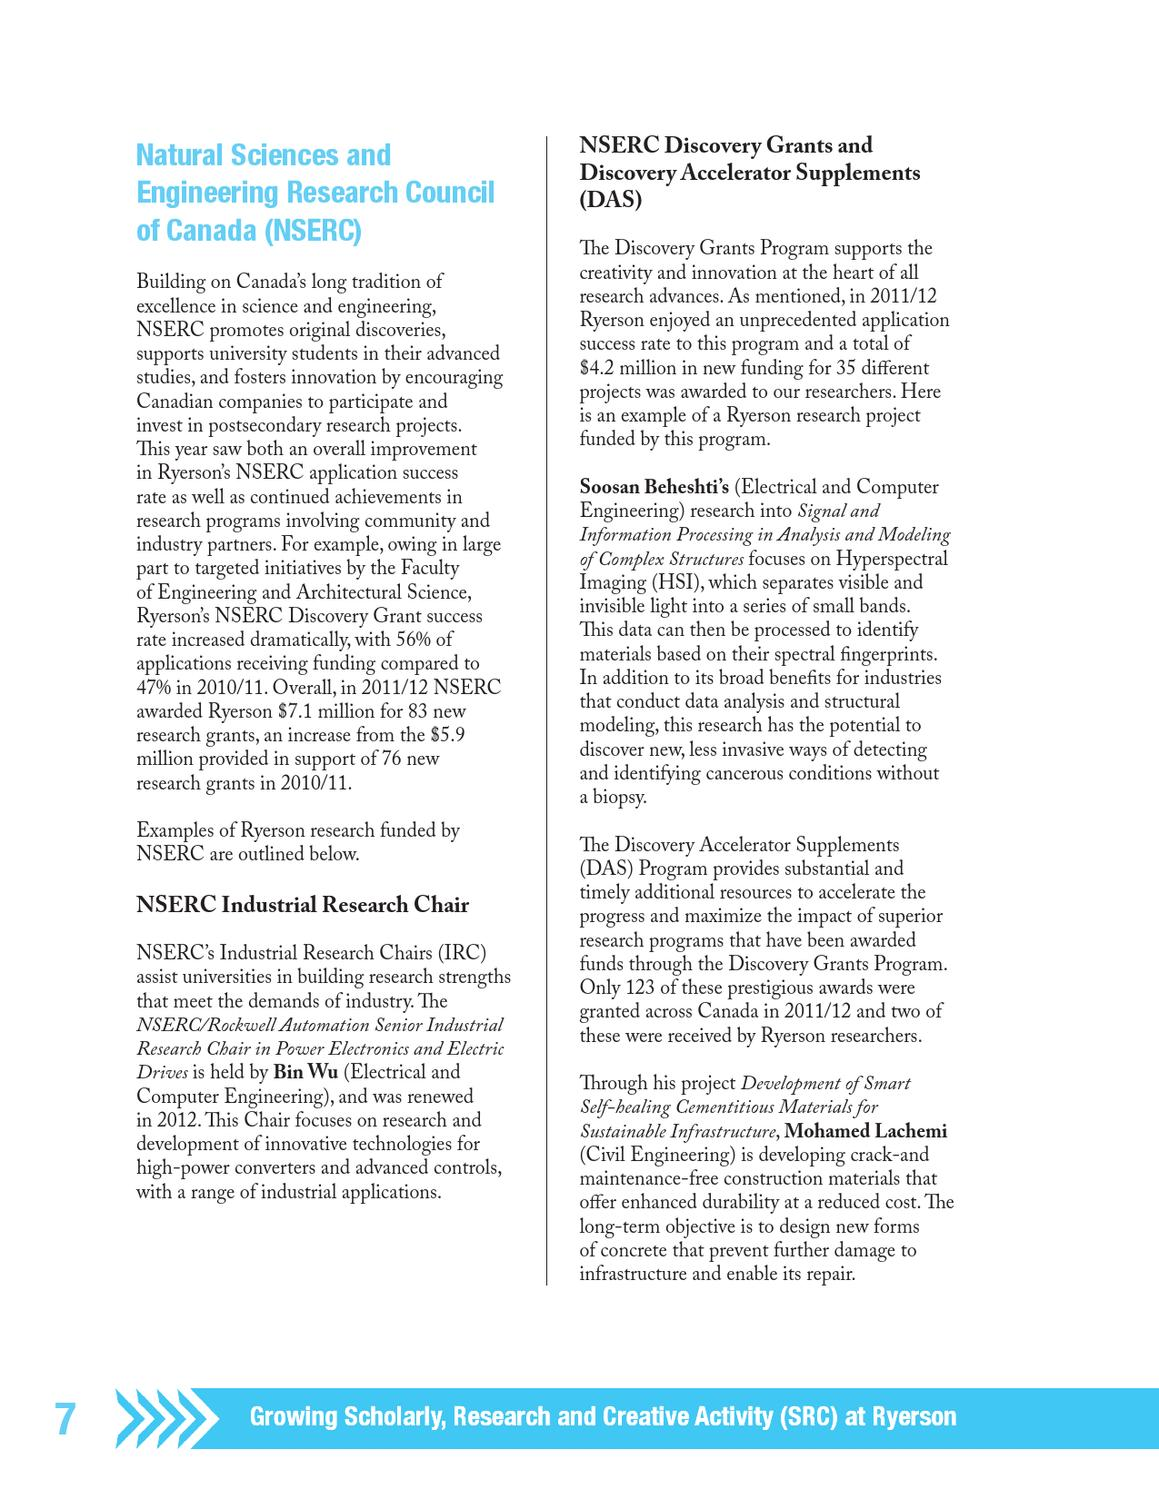 Ryerson Research and Innovation 2011-12 Annual Report by